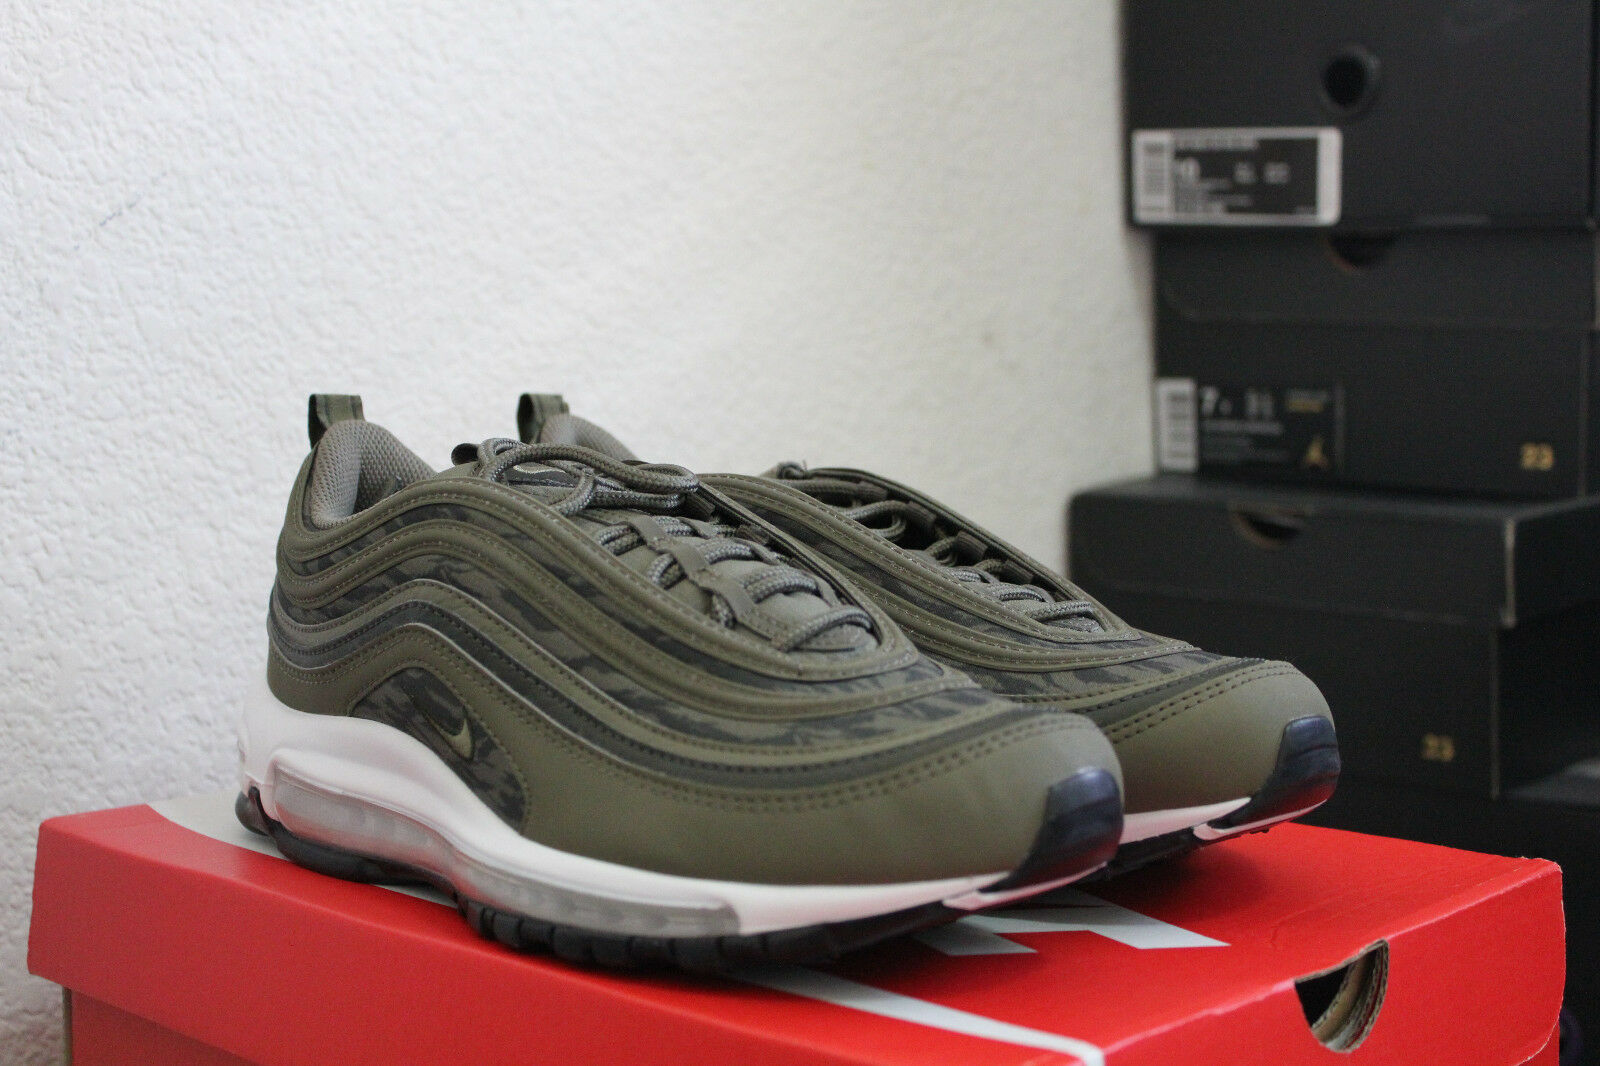 NIKE AIR MAX MAX MAX 97 TIGER CAMO OLIVE MEN'S RUNNING SHOES SIZE 8.5 NEW DS AQ4132 200 6ee396